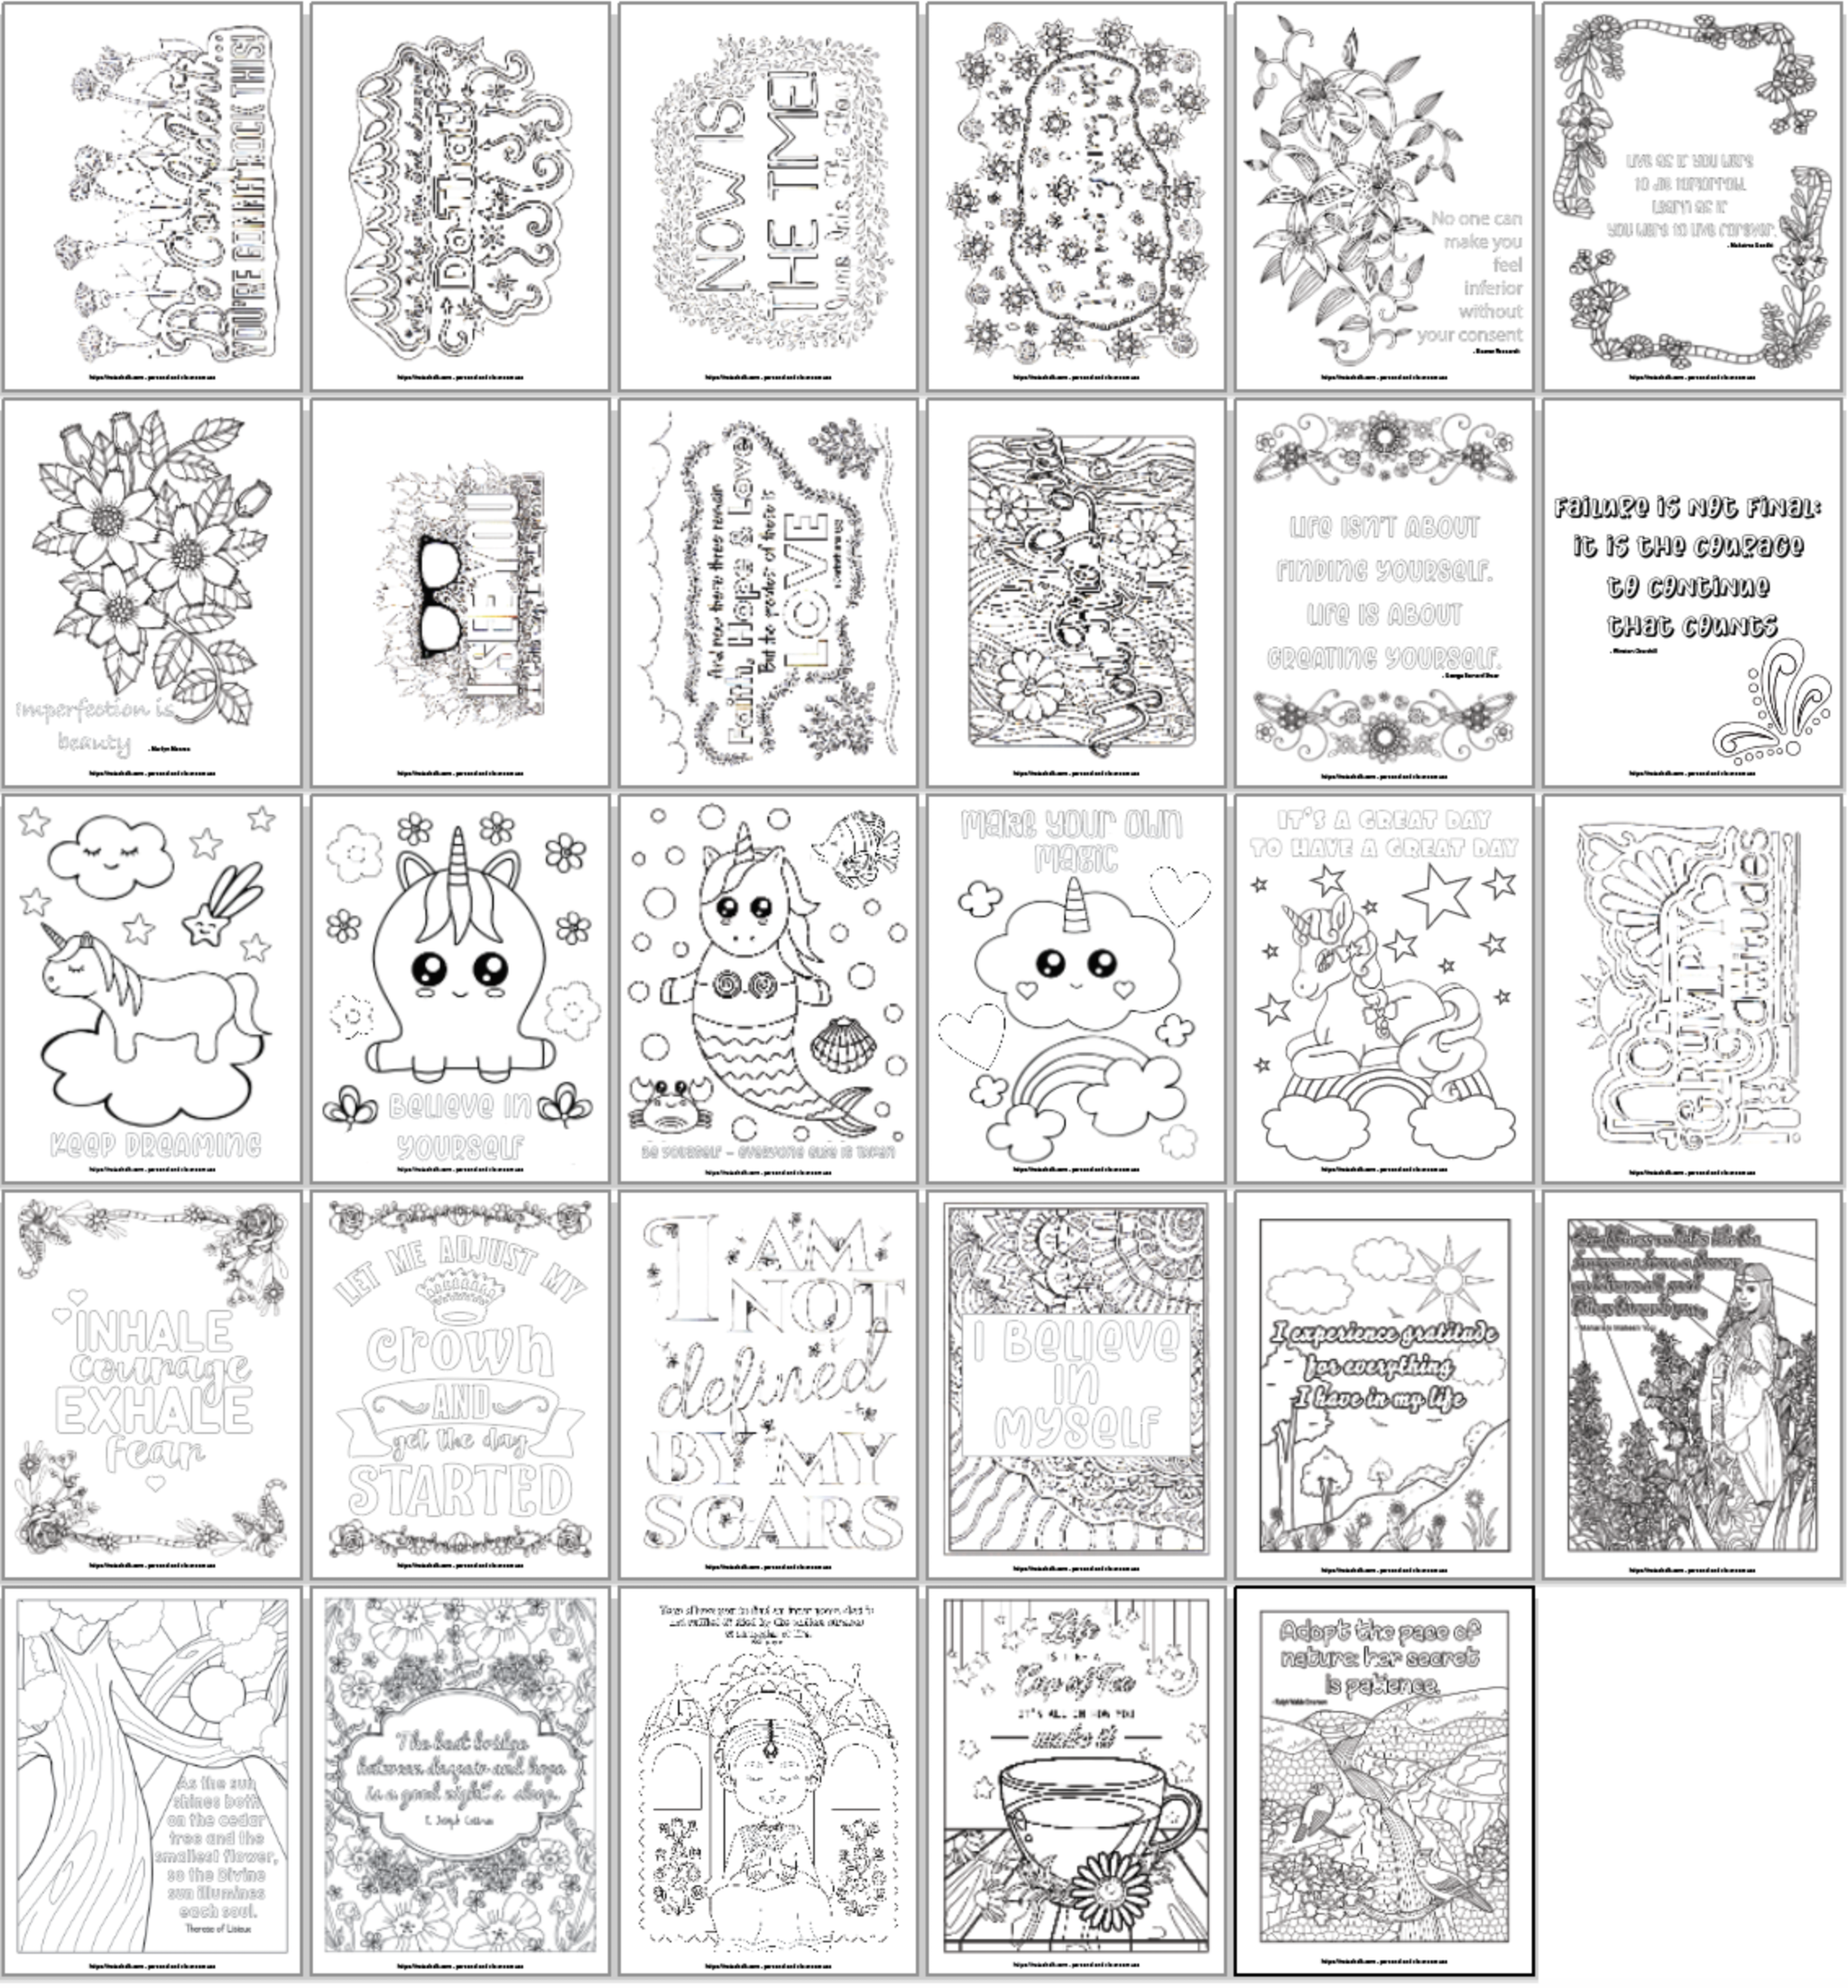 21 Free Inspirational Coloring Pages For When You Re Having A Tough Day Inspirational Quotes Coloring Quote Coloring Pages Coloring Pages [ 2203 x 2048 Pixel ]